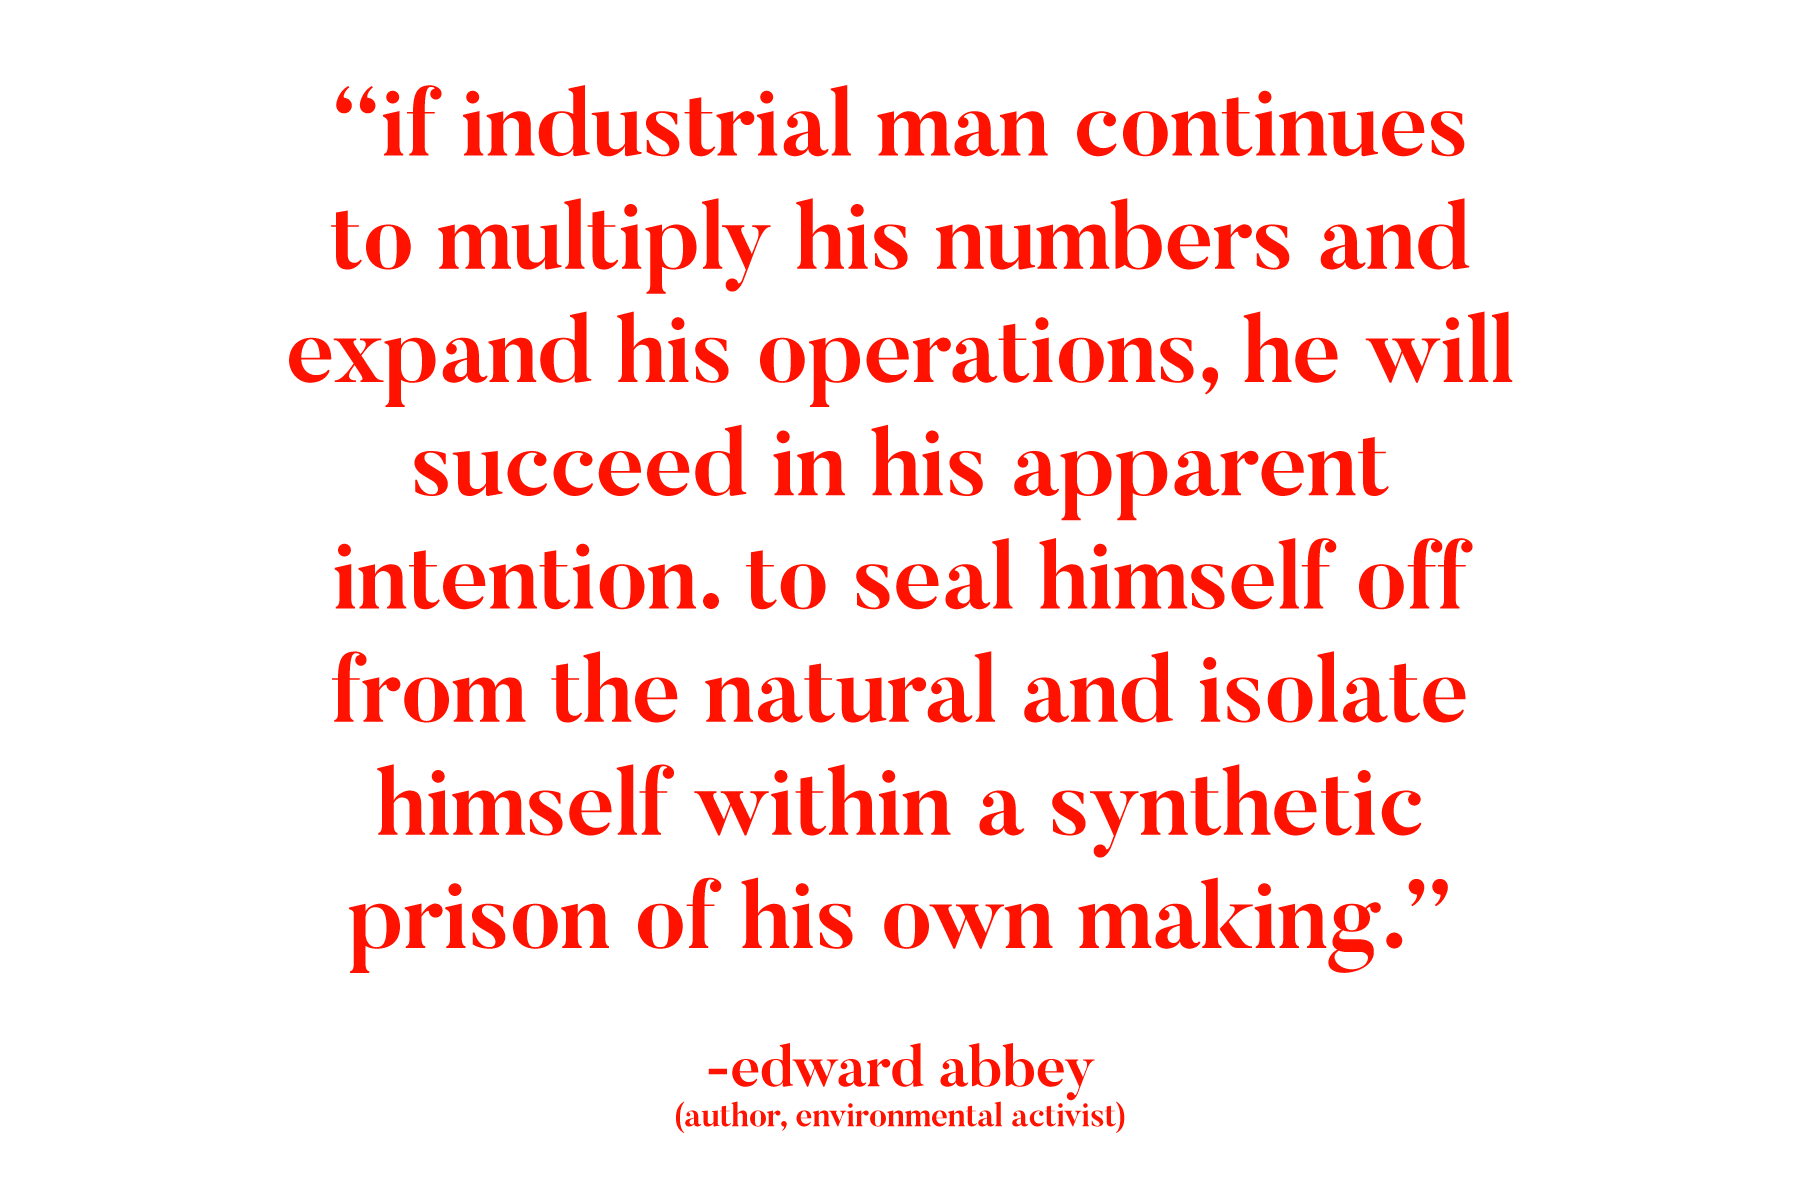 edward abbey quote.png